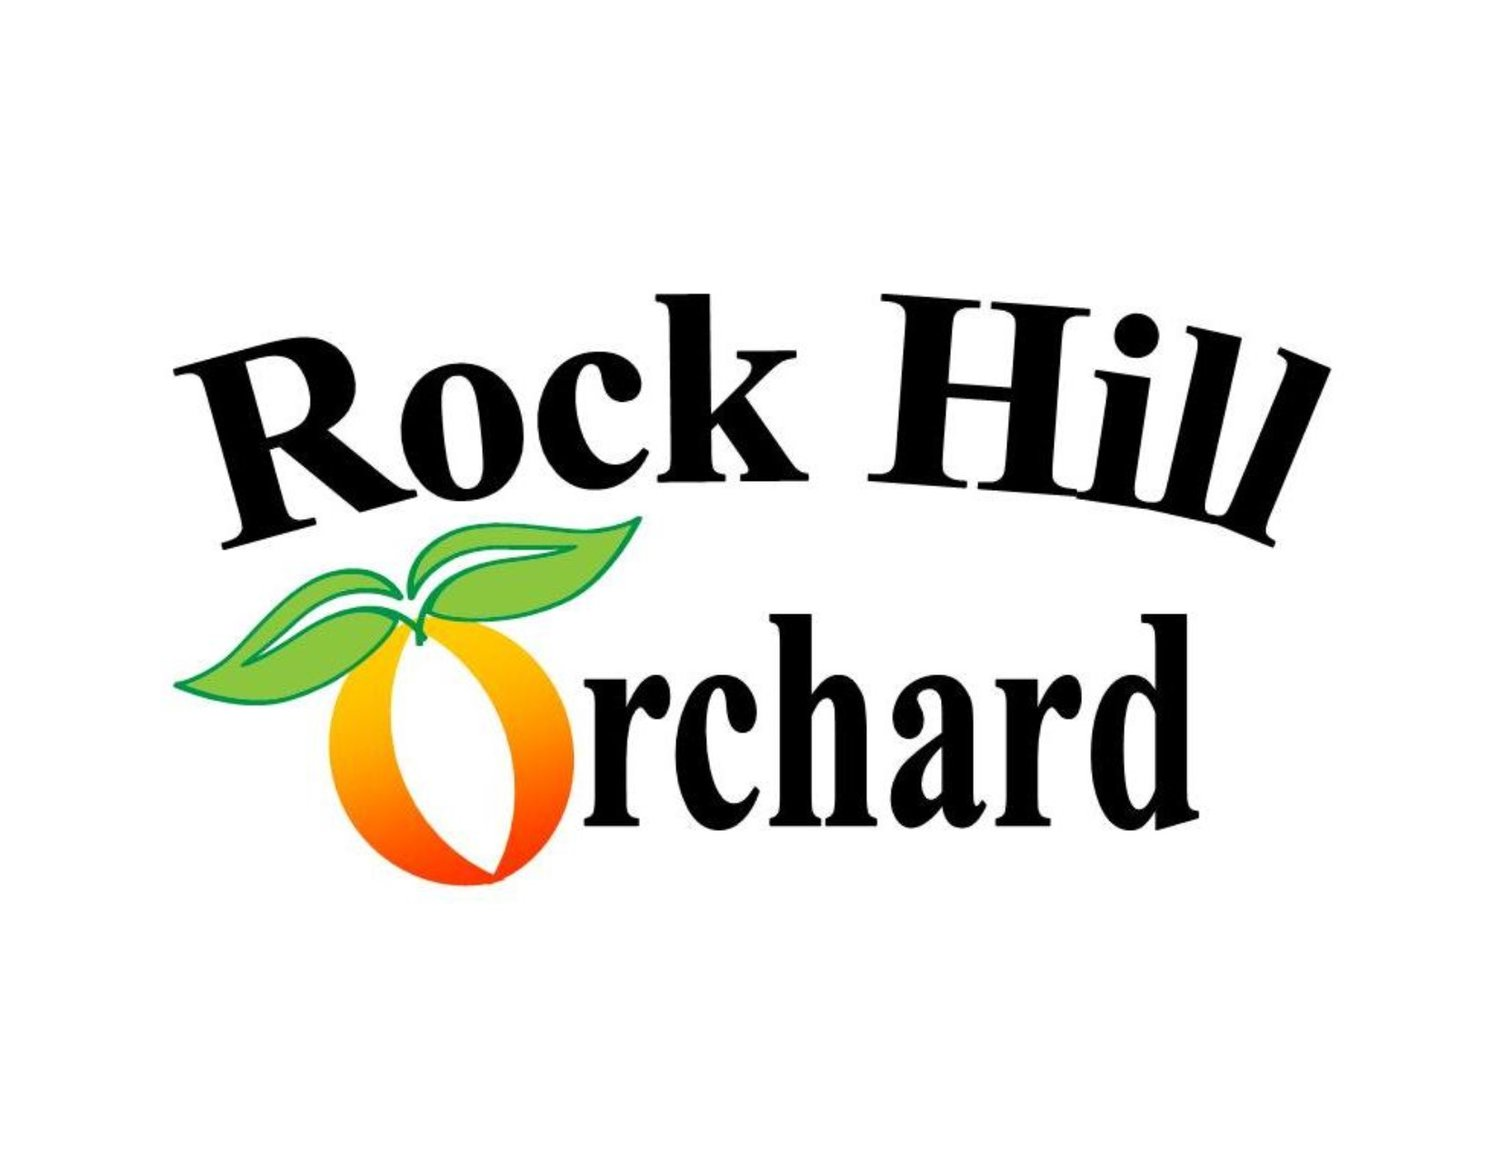 Rock Hill Orchard & Woodbourne Creamery